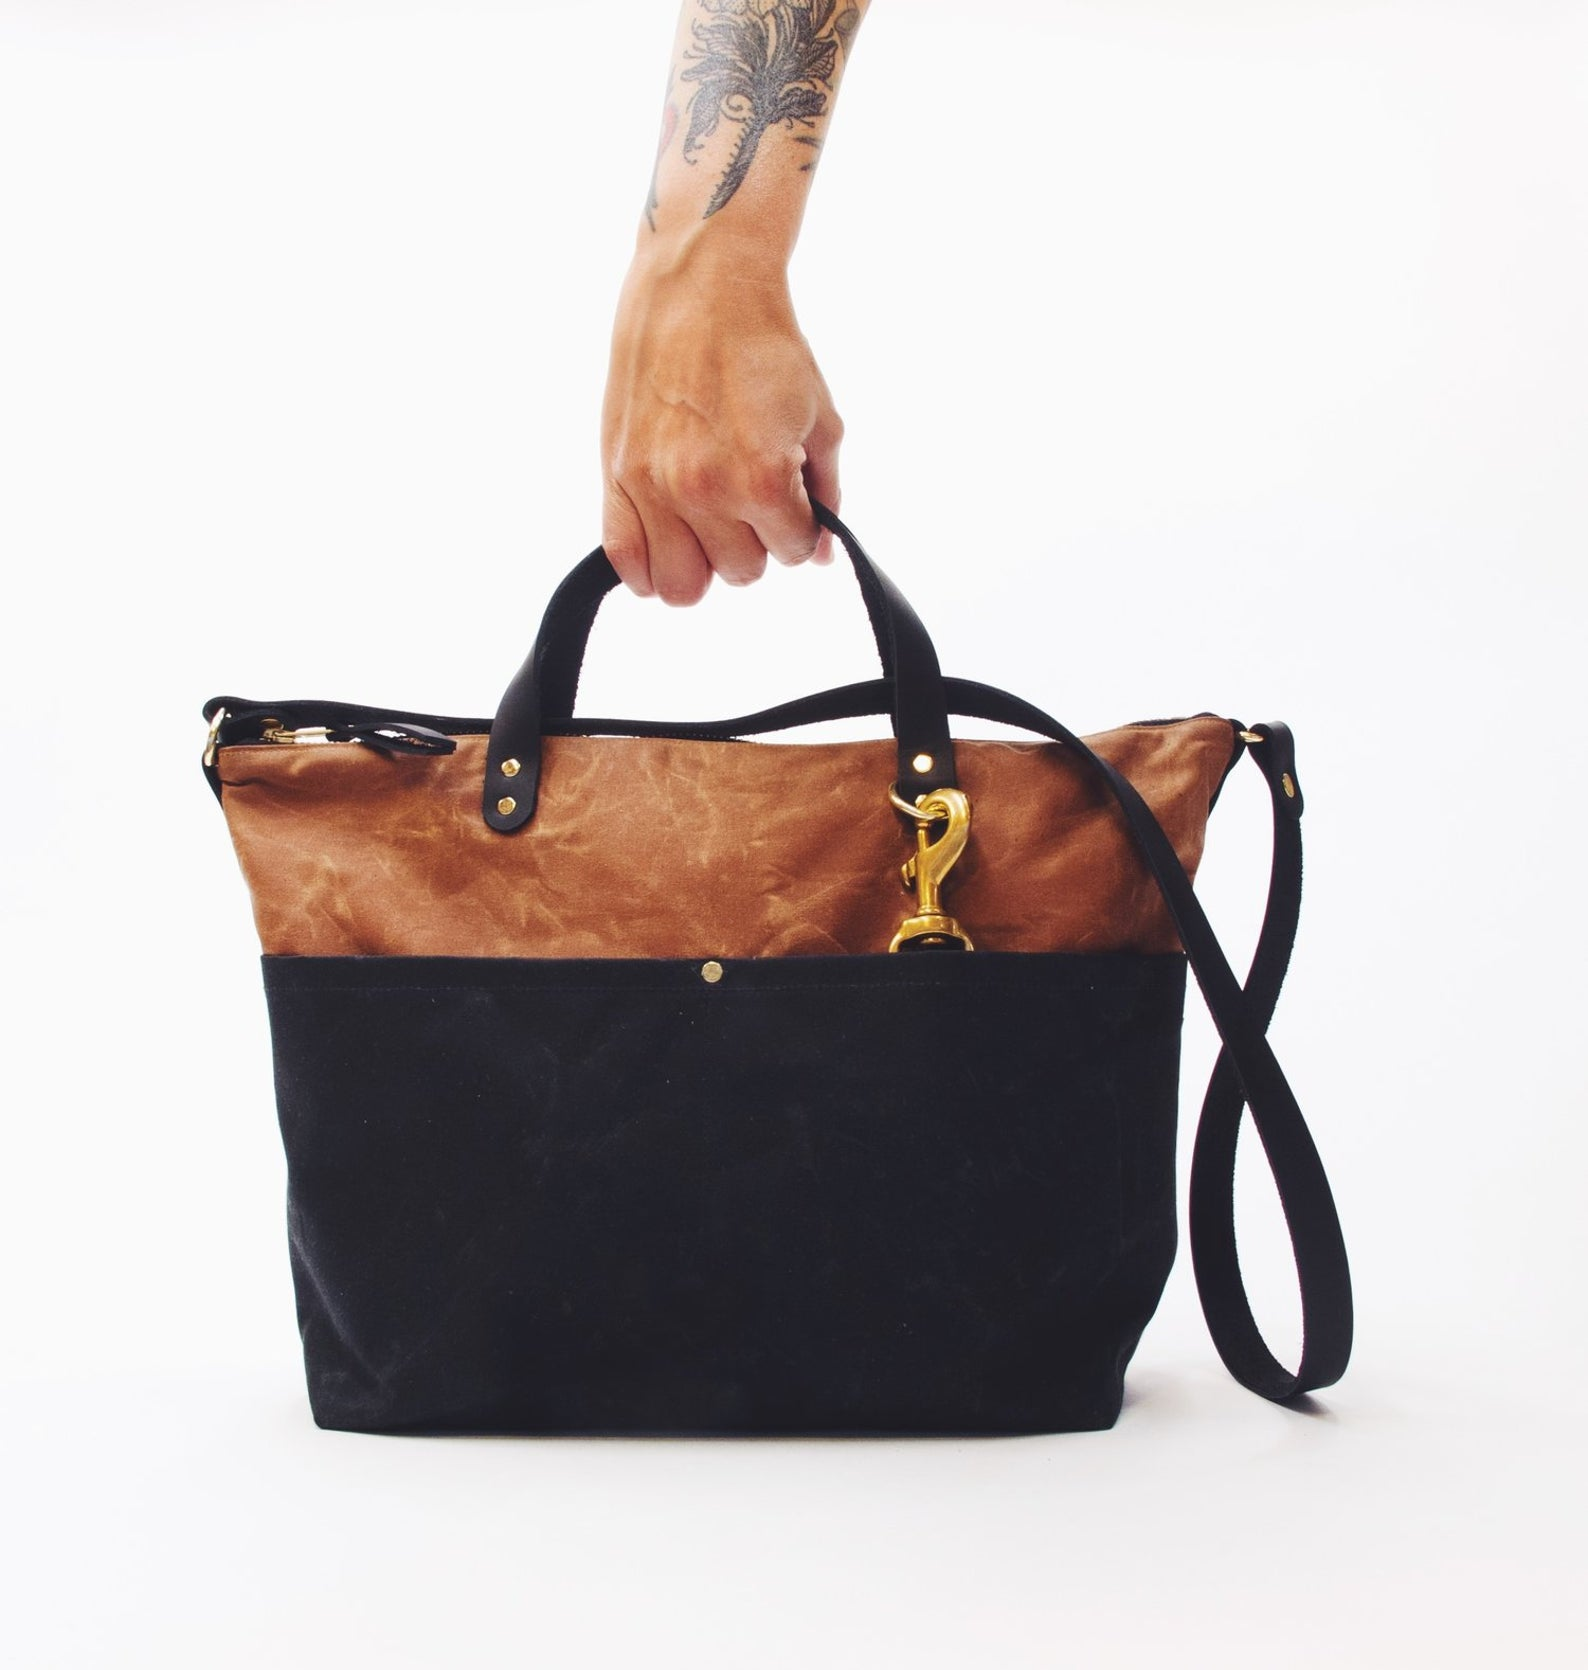 leather tote bag sewing kit